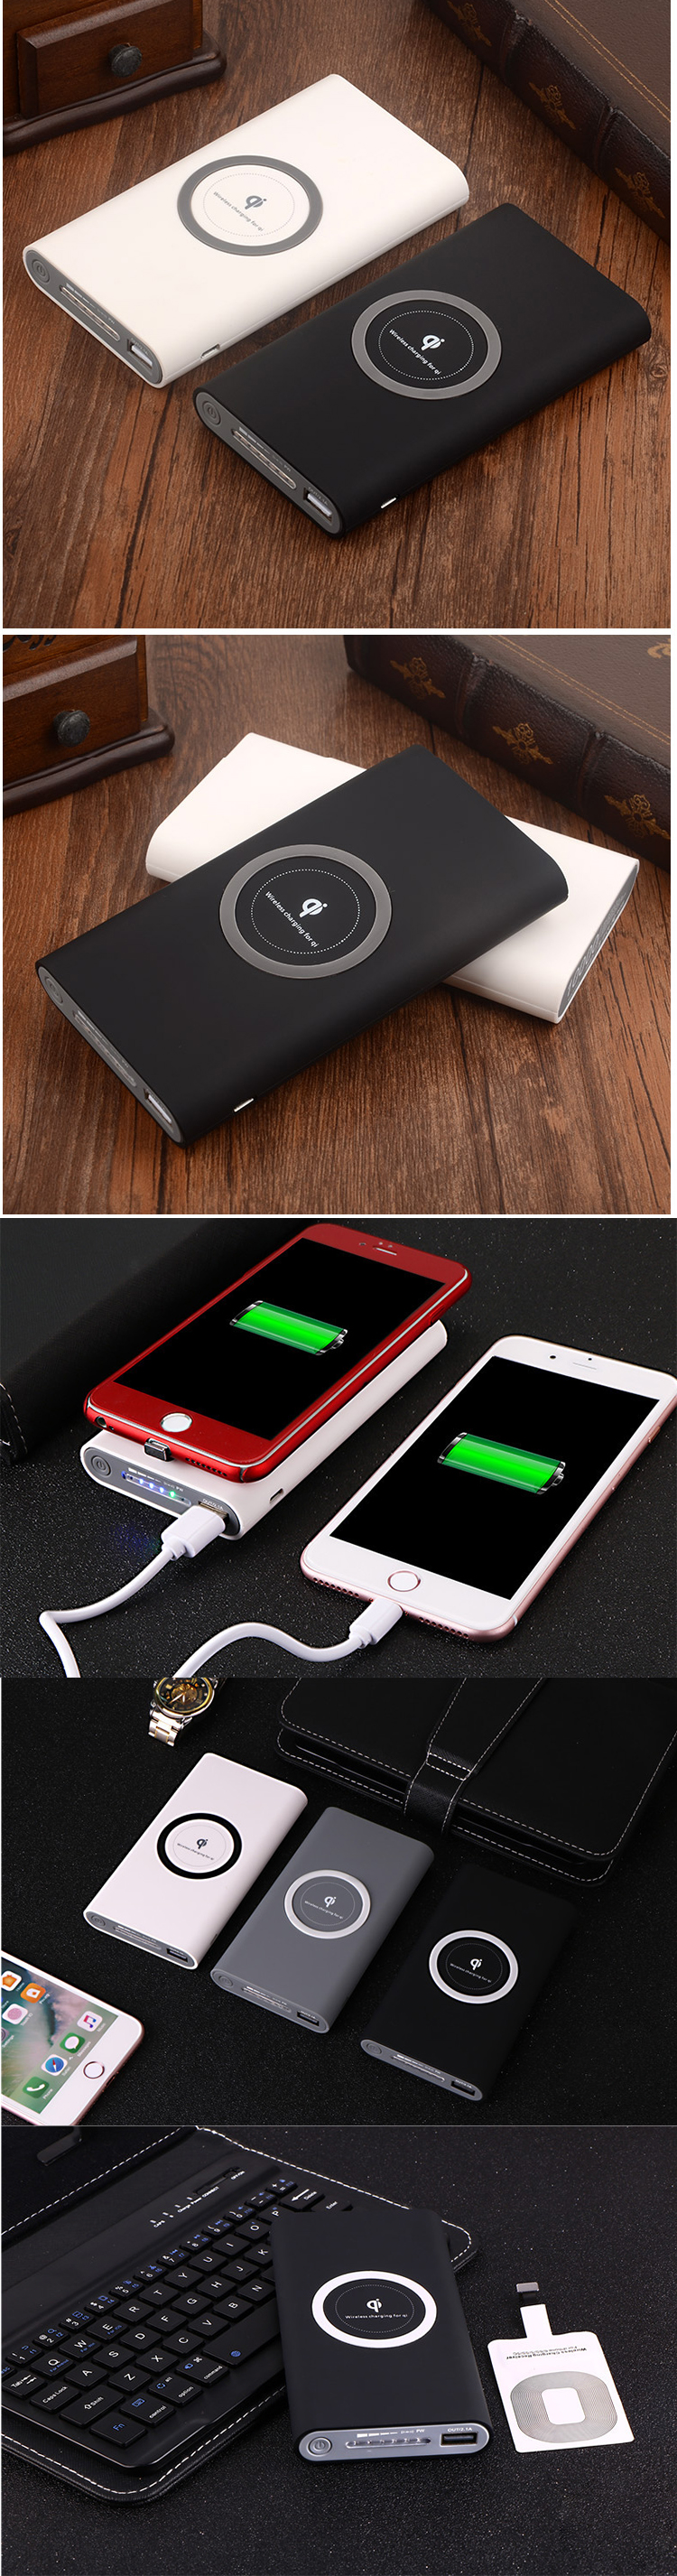 Hot sale mini portable gift 10000mah power bank wireless powerbank for iphone / android wireless power bank qi wireless charger